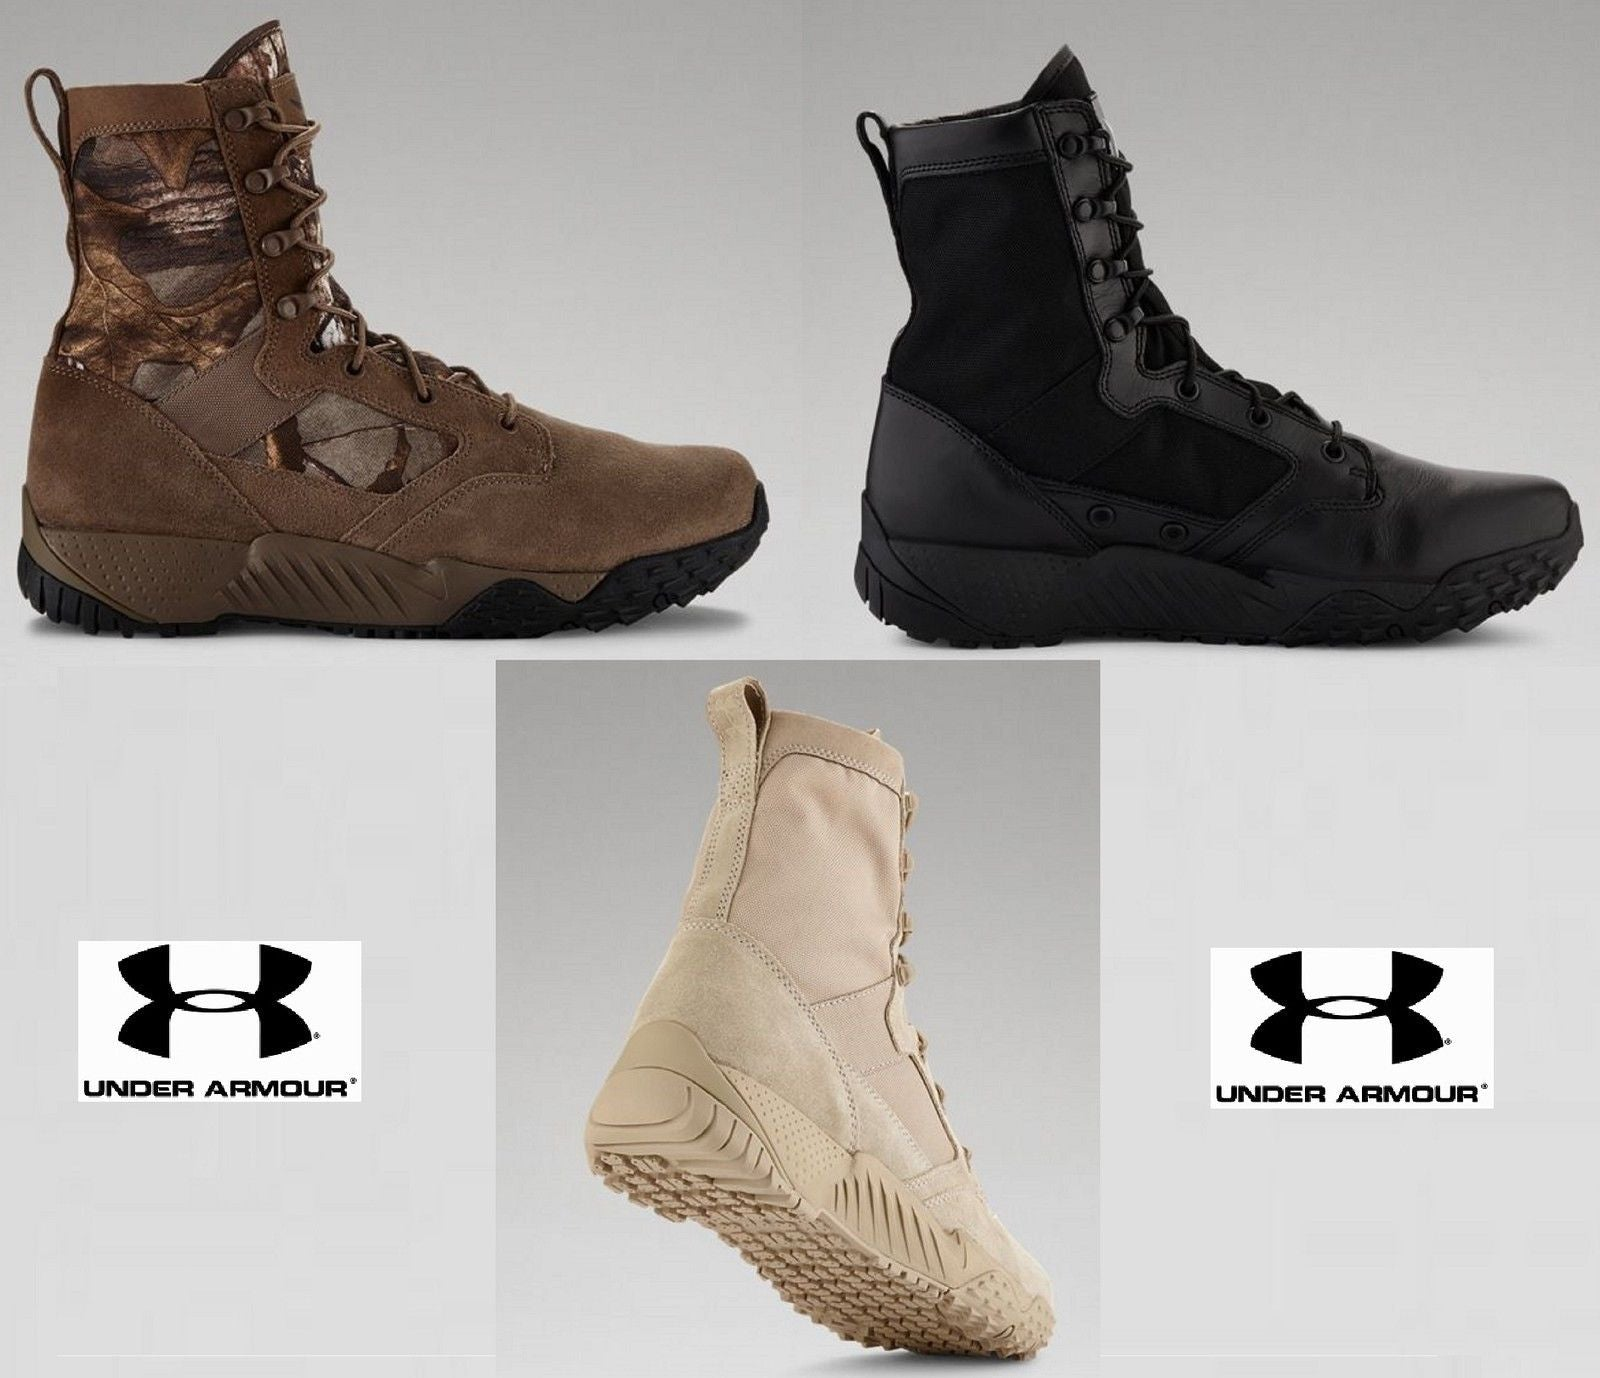 wholesale dealer b4281 cd8b2 Under Armour Jungle Rat Tactical Boot - UA 8